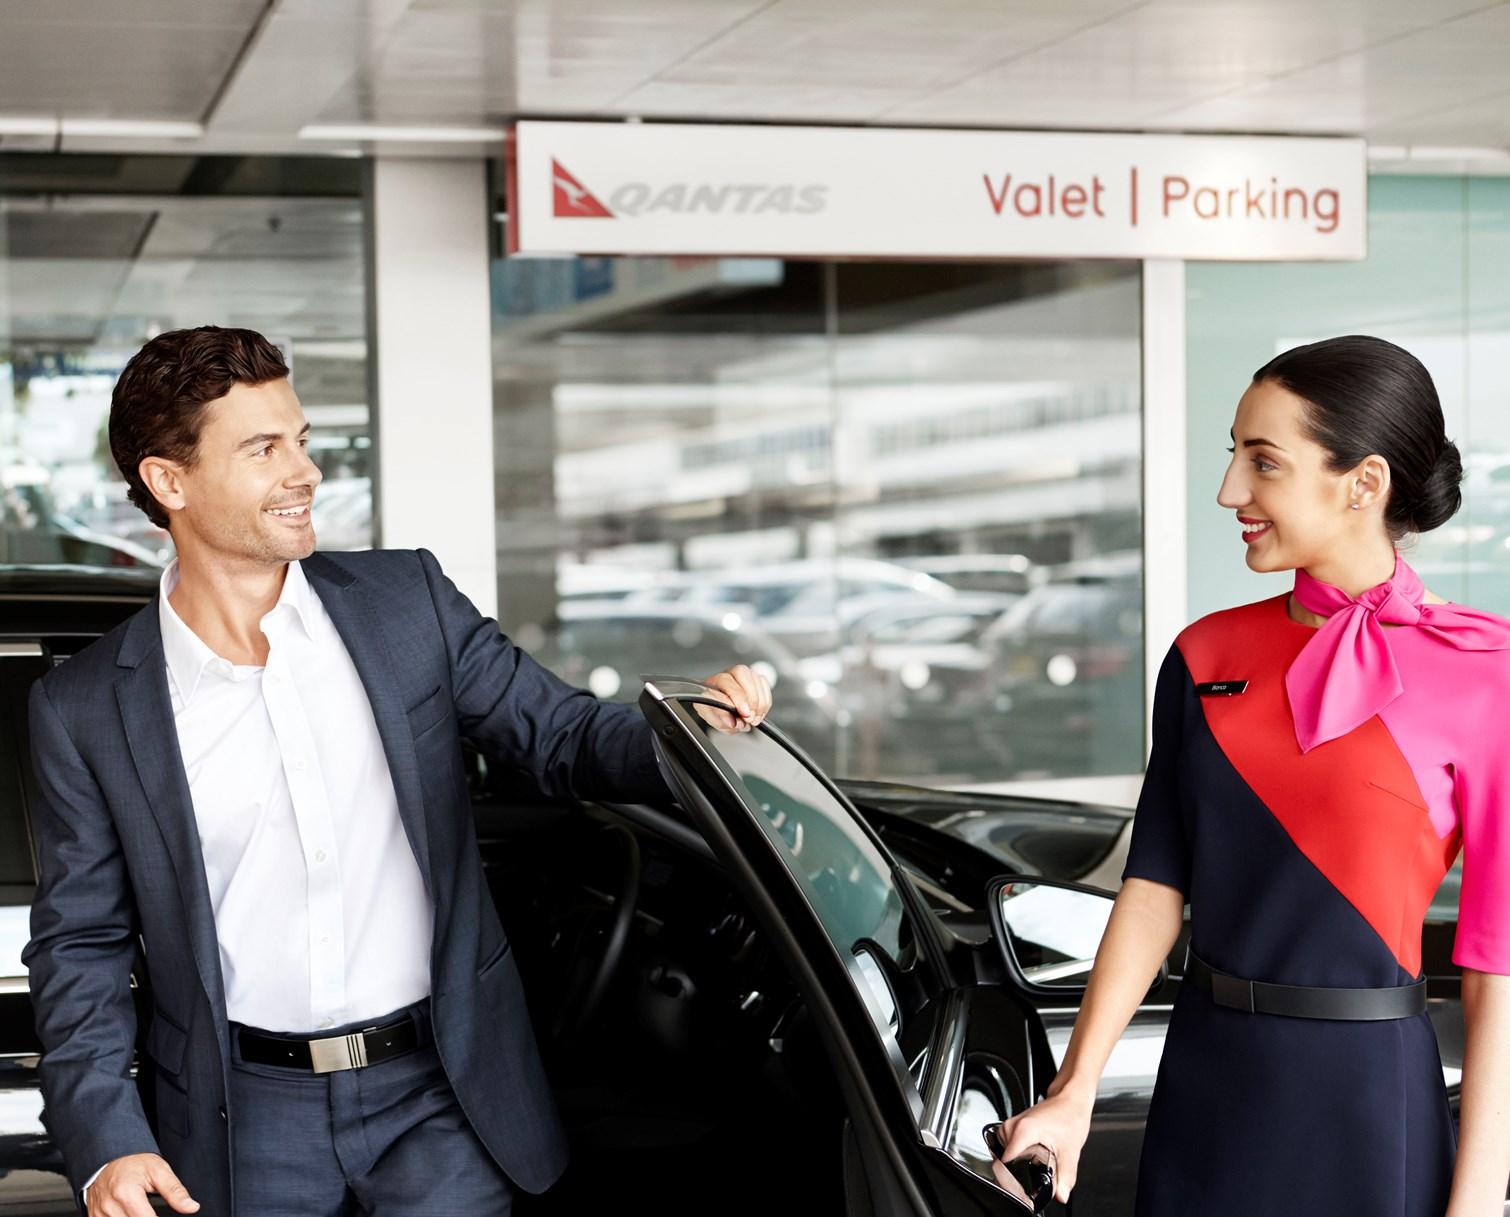 ABOUT - Equity Valet Parking